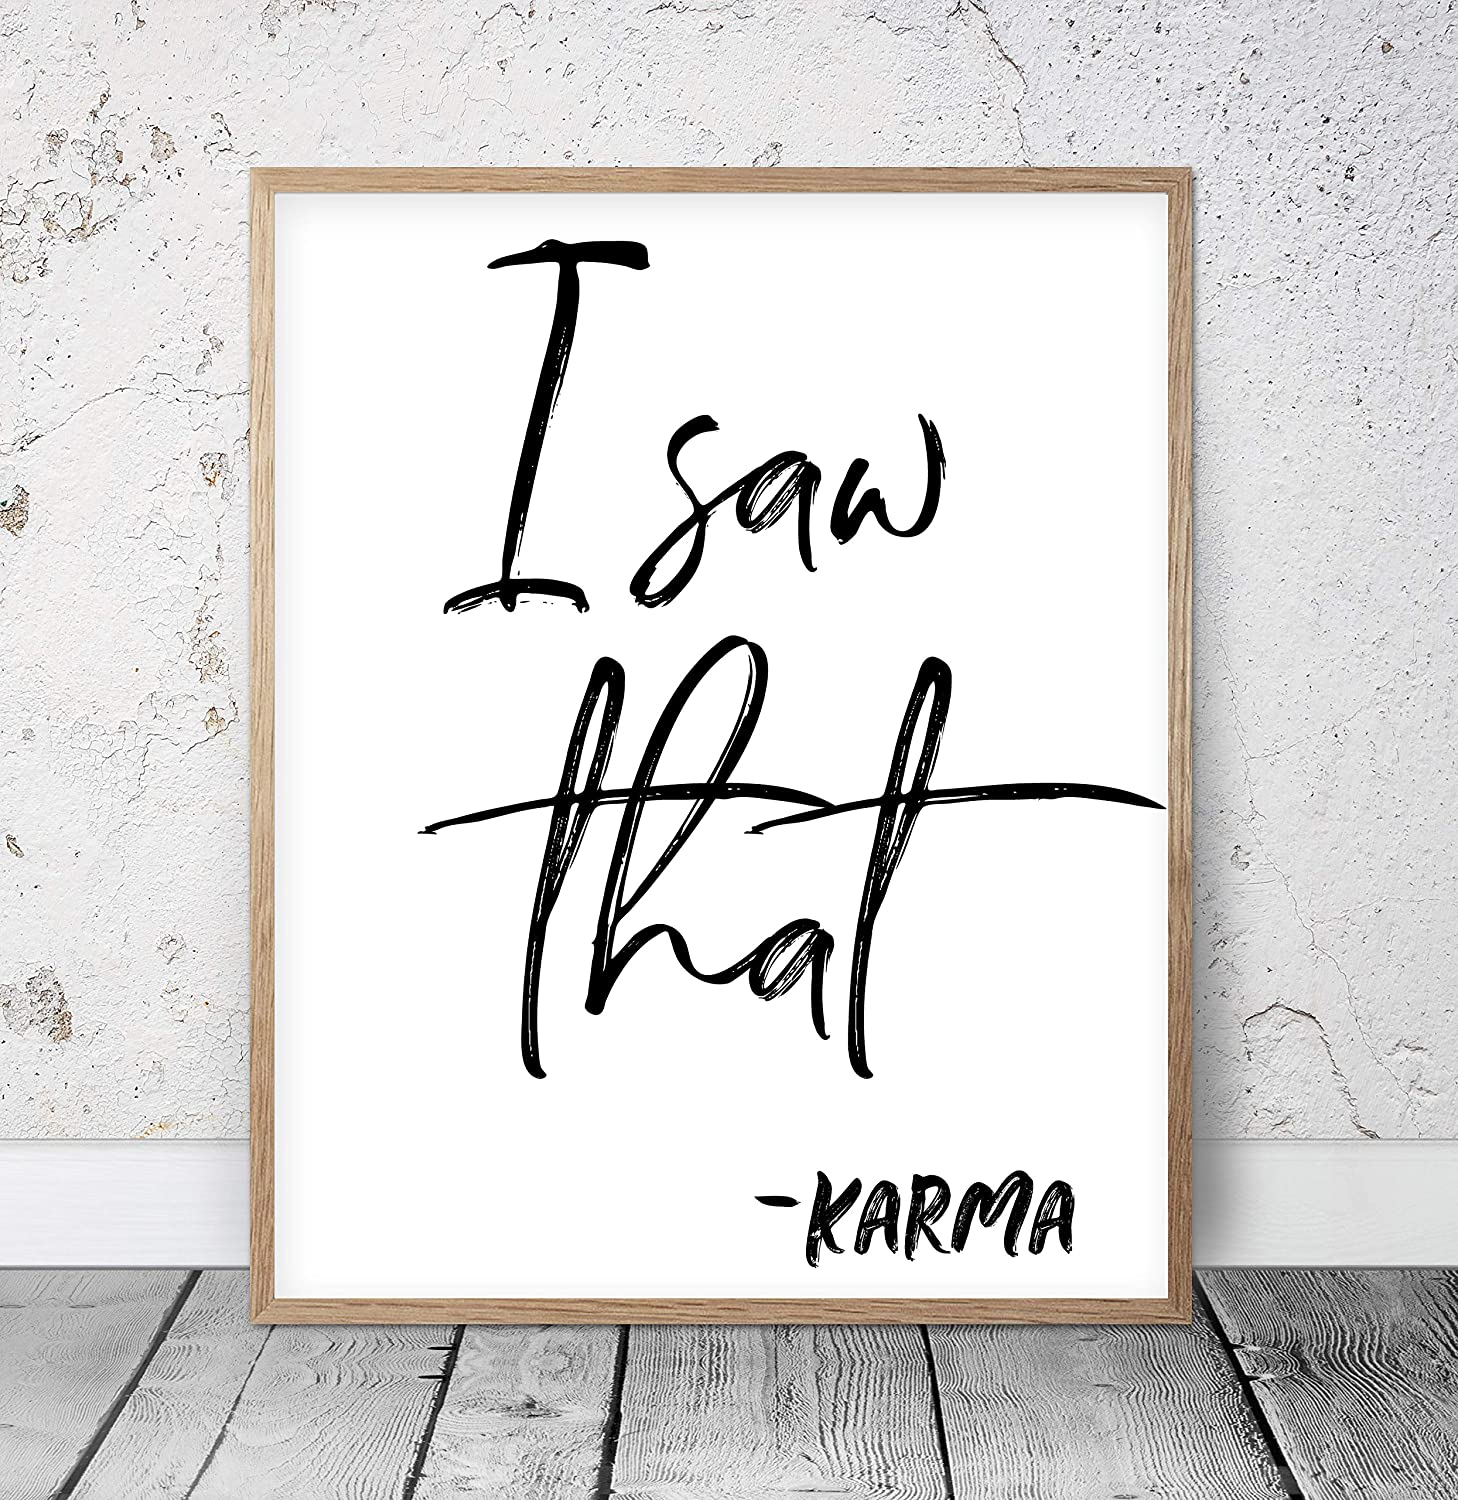 Amazon Com I Saw That Karma Motivational Prints Funny Quotes Funny Office Decor Dorm Room Decor Typography Print Funny Home Print Karma Quote Wood Pallet Design Wall Art Sign Plaque With Frame Wooden